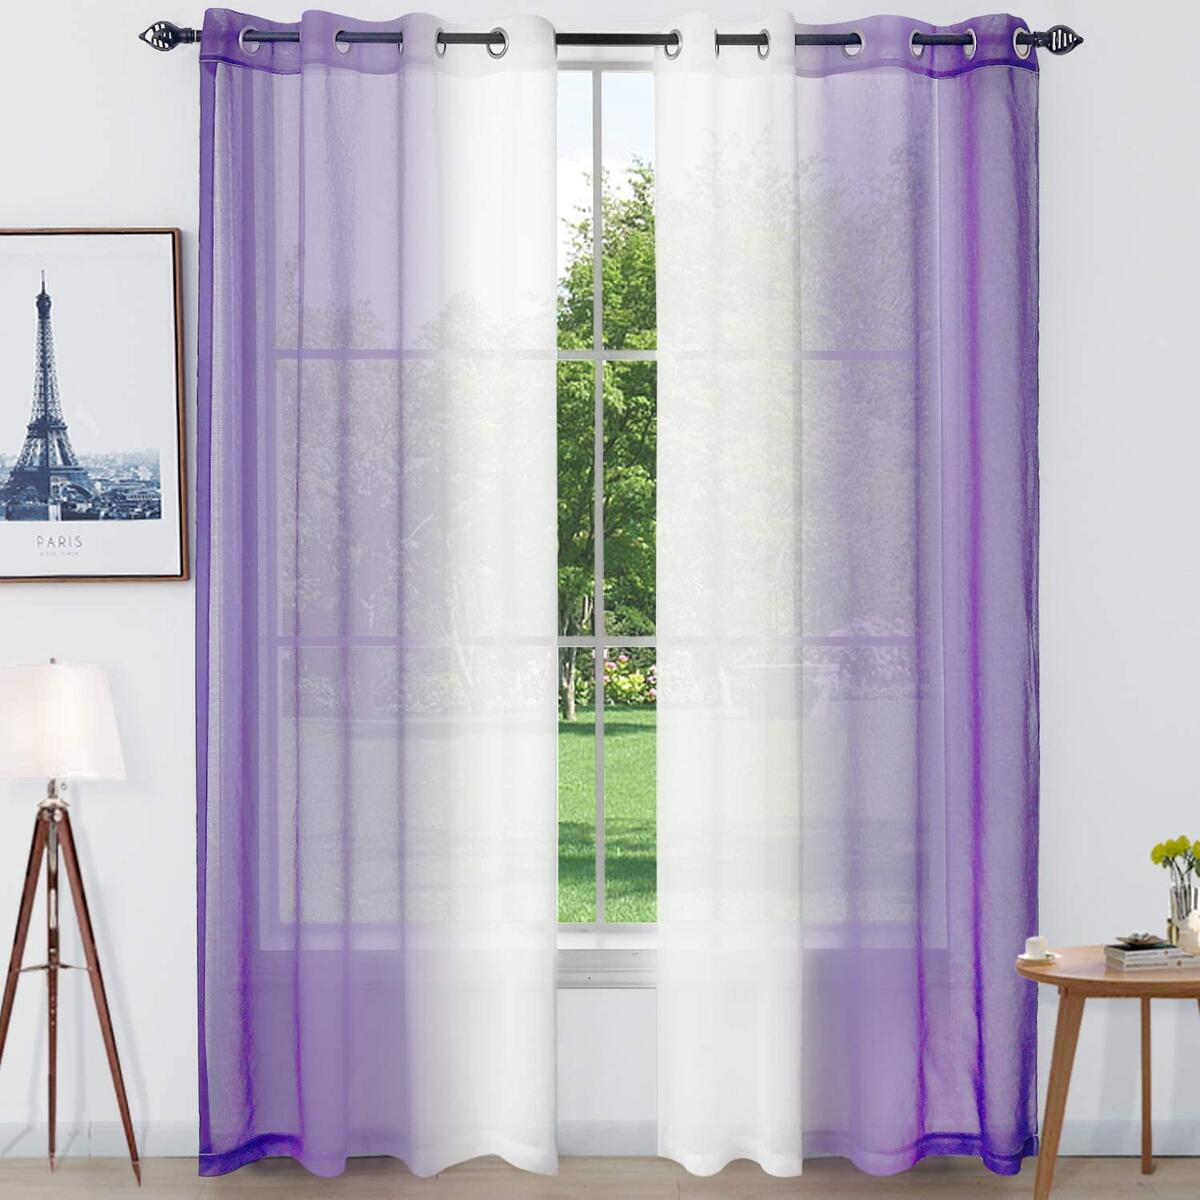 Naturoom Purple Ombre Sheer Curtains Faux Linen Grommet Light Filtering and Privacy Sheer Gradient Window Curtain Pair for Bedroom Living Room, Set of 2 Panels (Each 52 x 84 Inch, Purple)